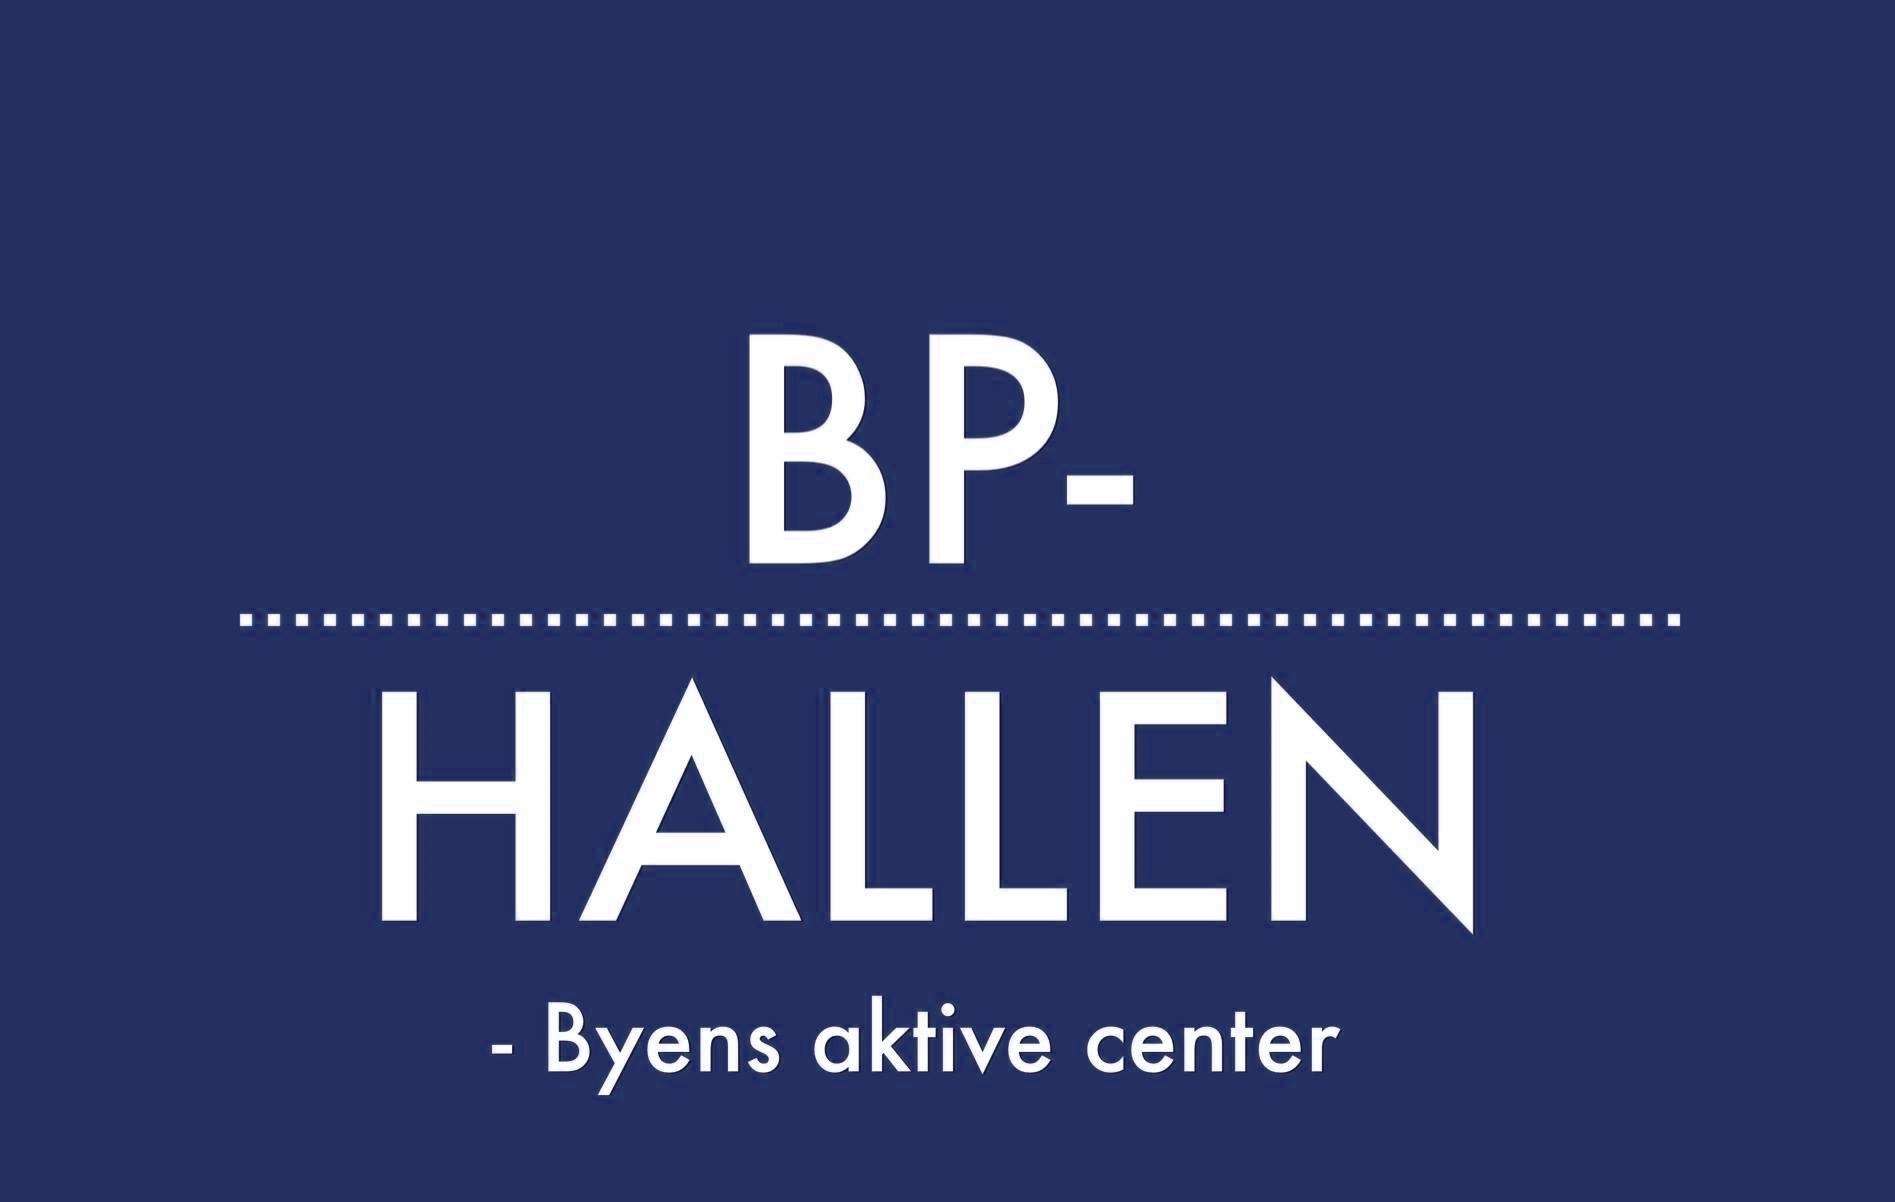 Logo for Bredstrup-Pjedsted Hallen